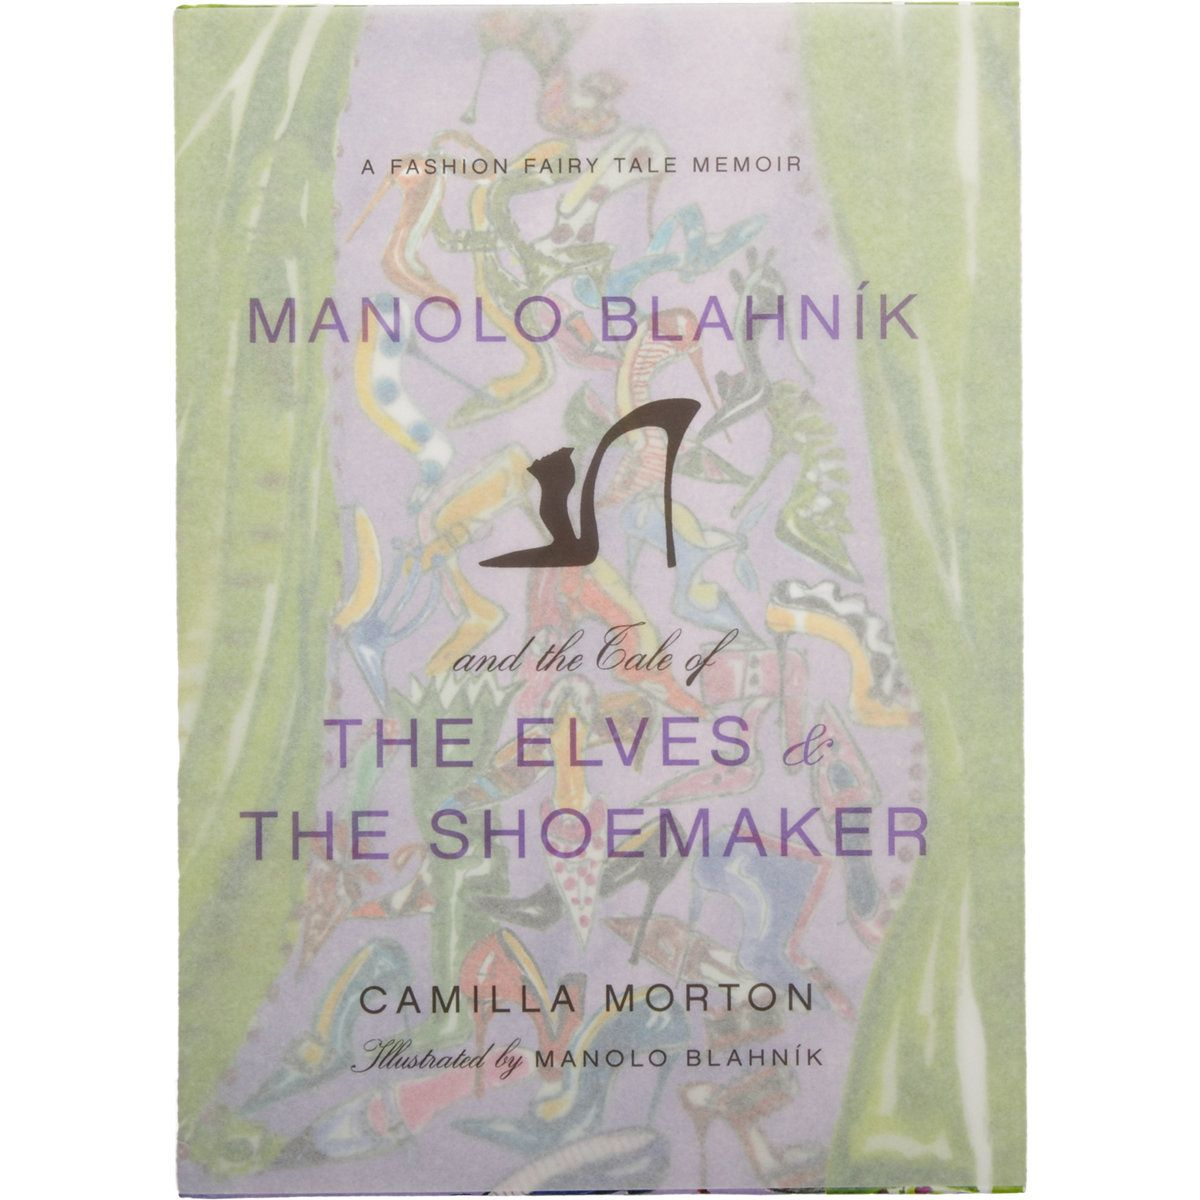 Harper Collins Manolo Blahník and the Tale of the Elves & the Shoemaker at Barneys.com